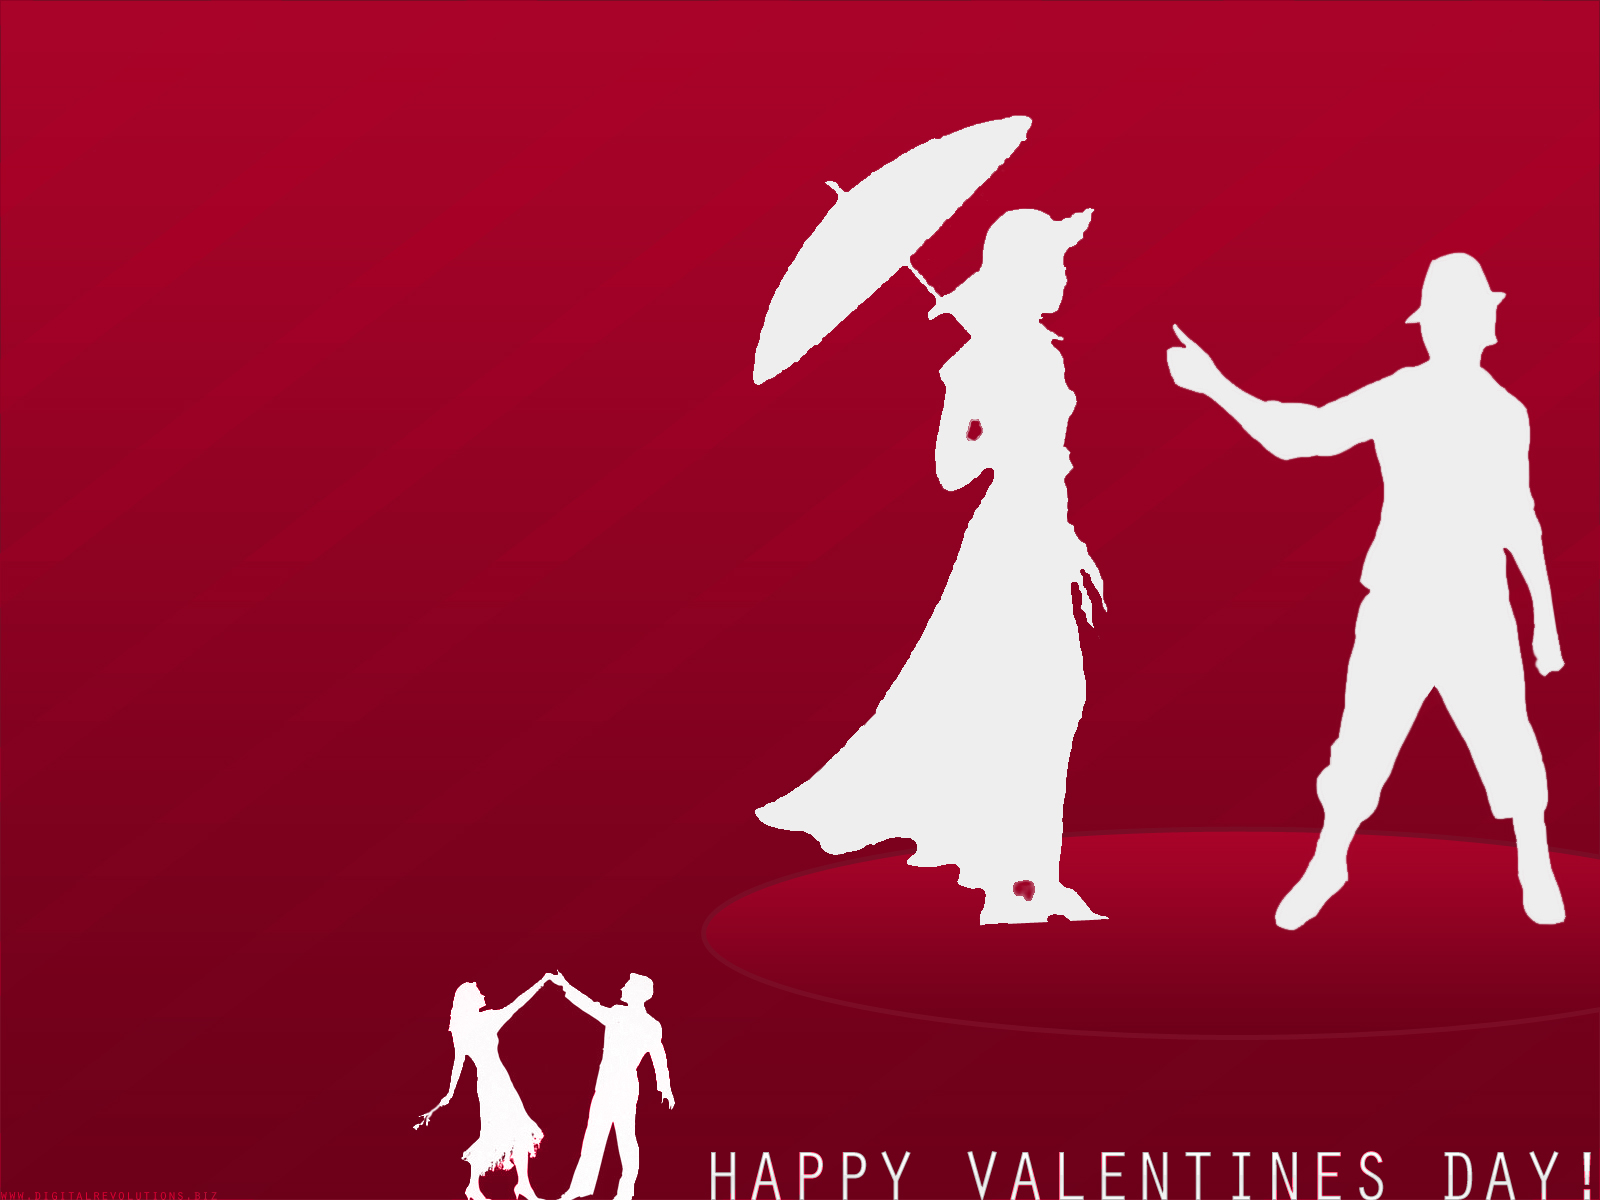 The last in our 2008 series of valentines wallpapers, Valentines Day